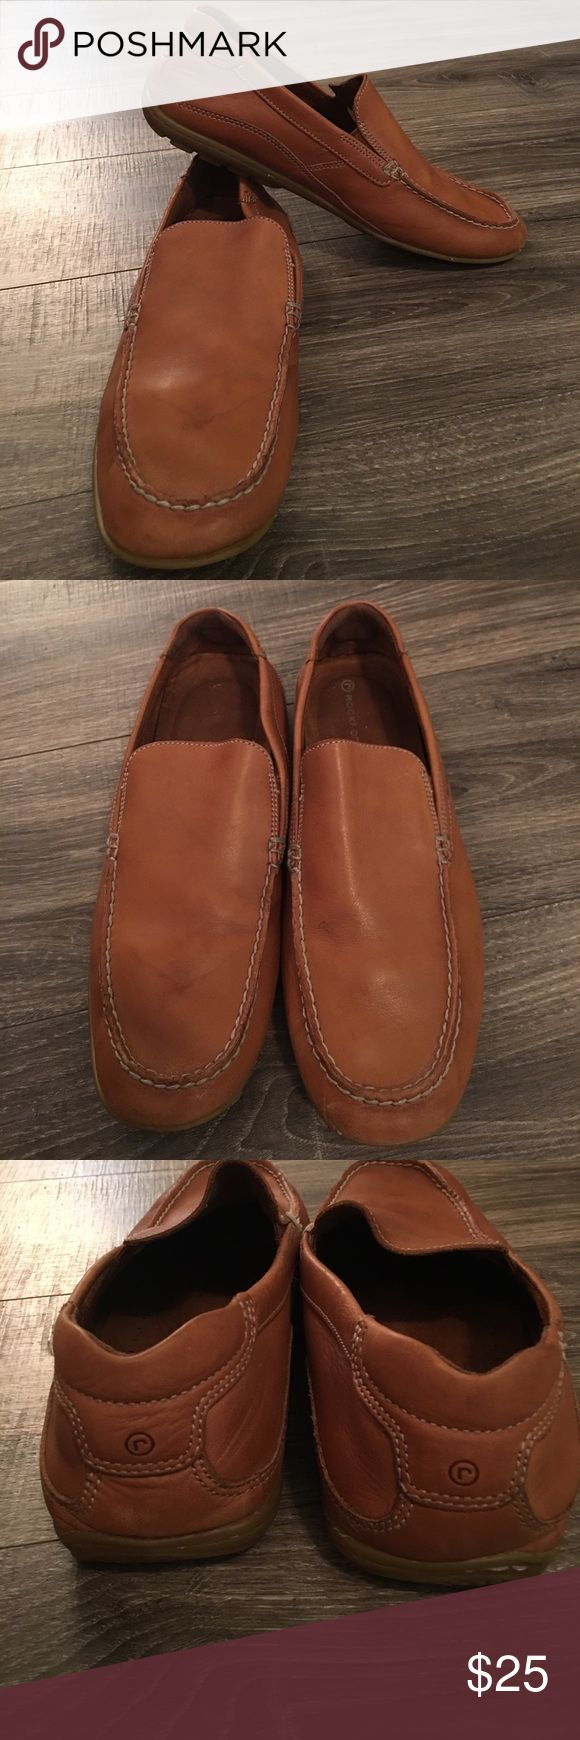 Leather Loafers Men's Leather Loafers- Rockport. Size 13. Excellent used condition. Soft leather. Rockport Shoes Loafers & Slip-Ons